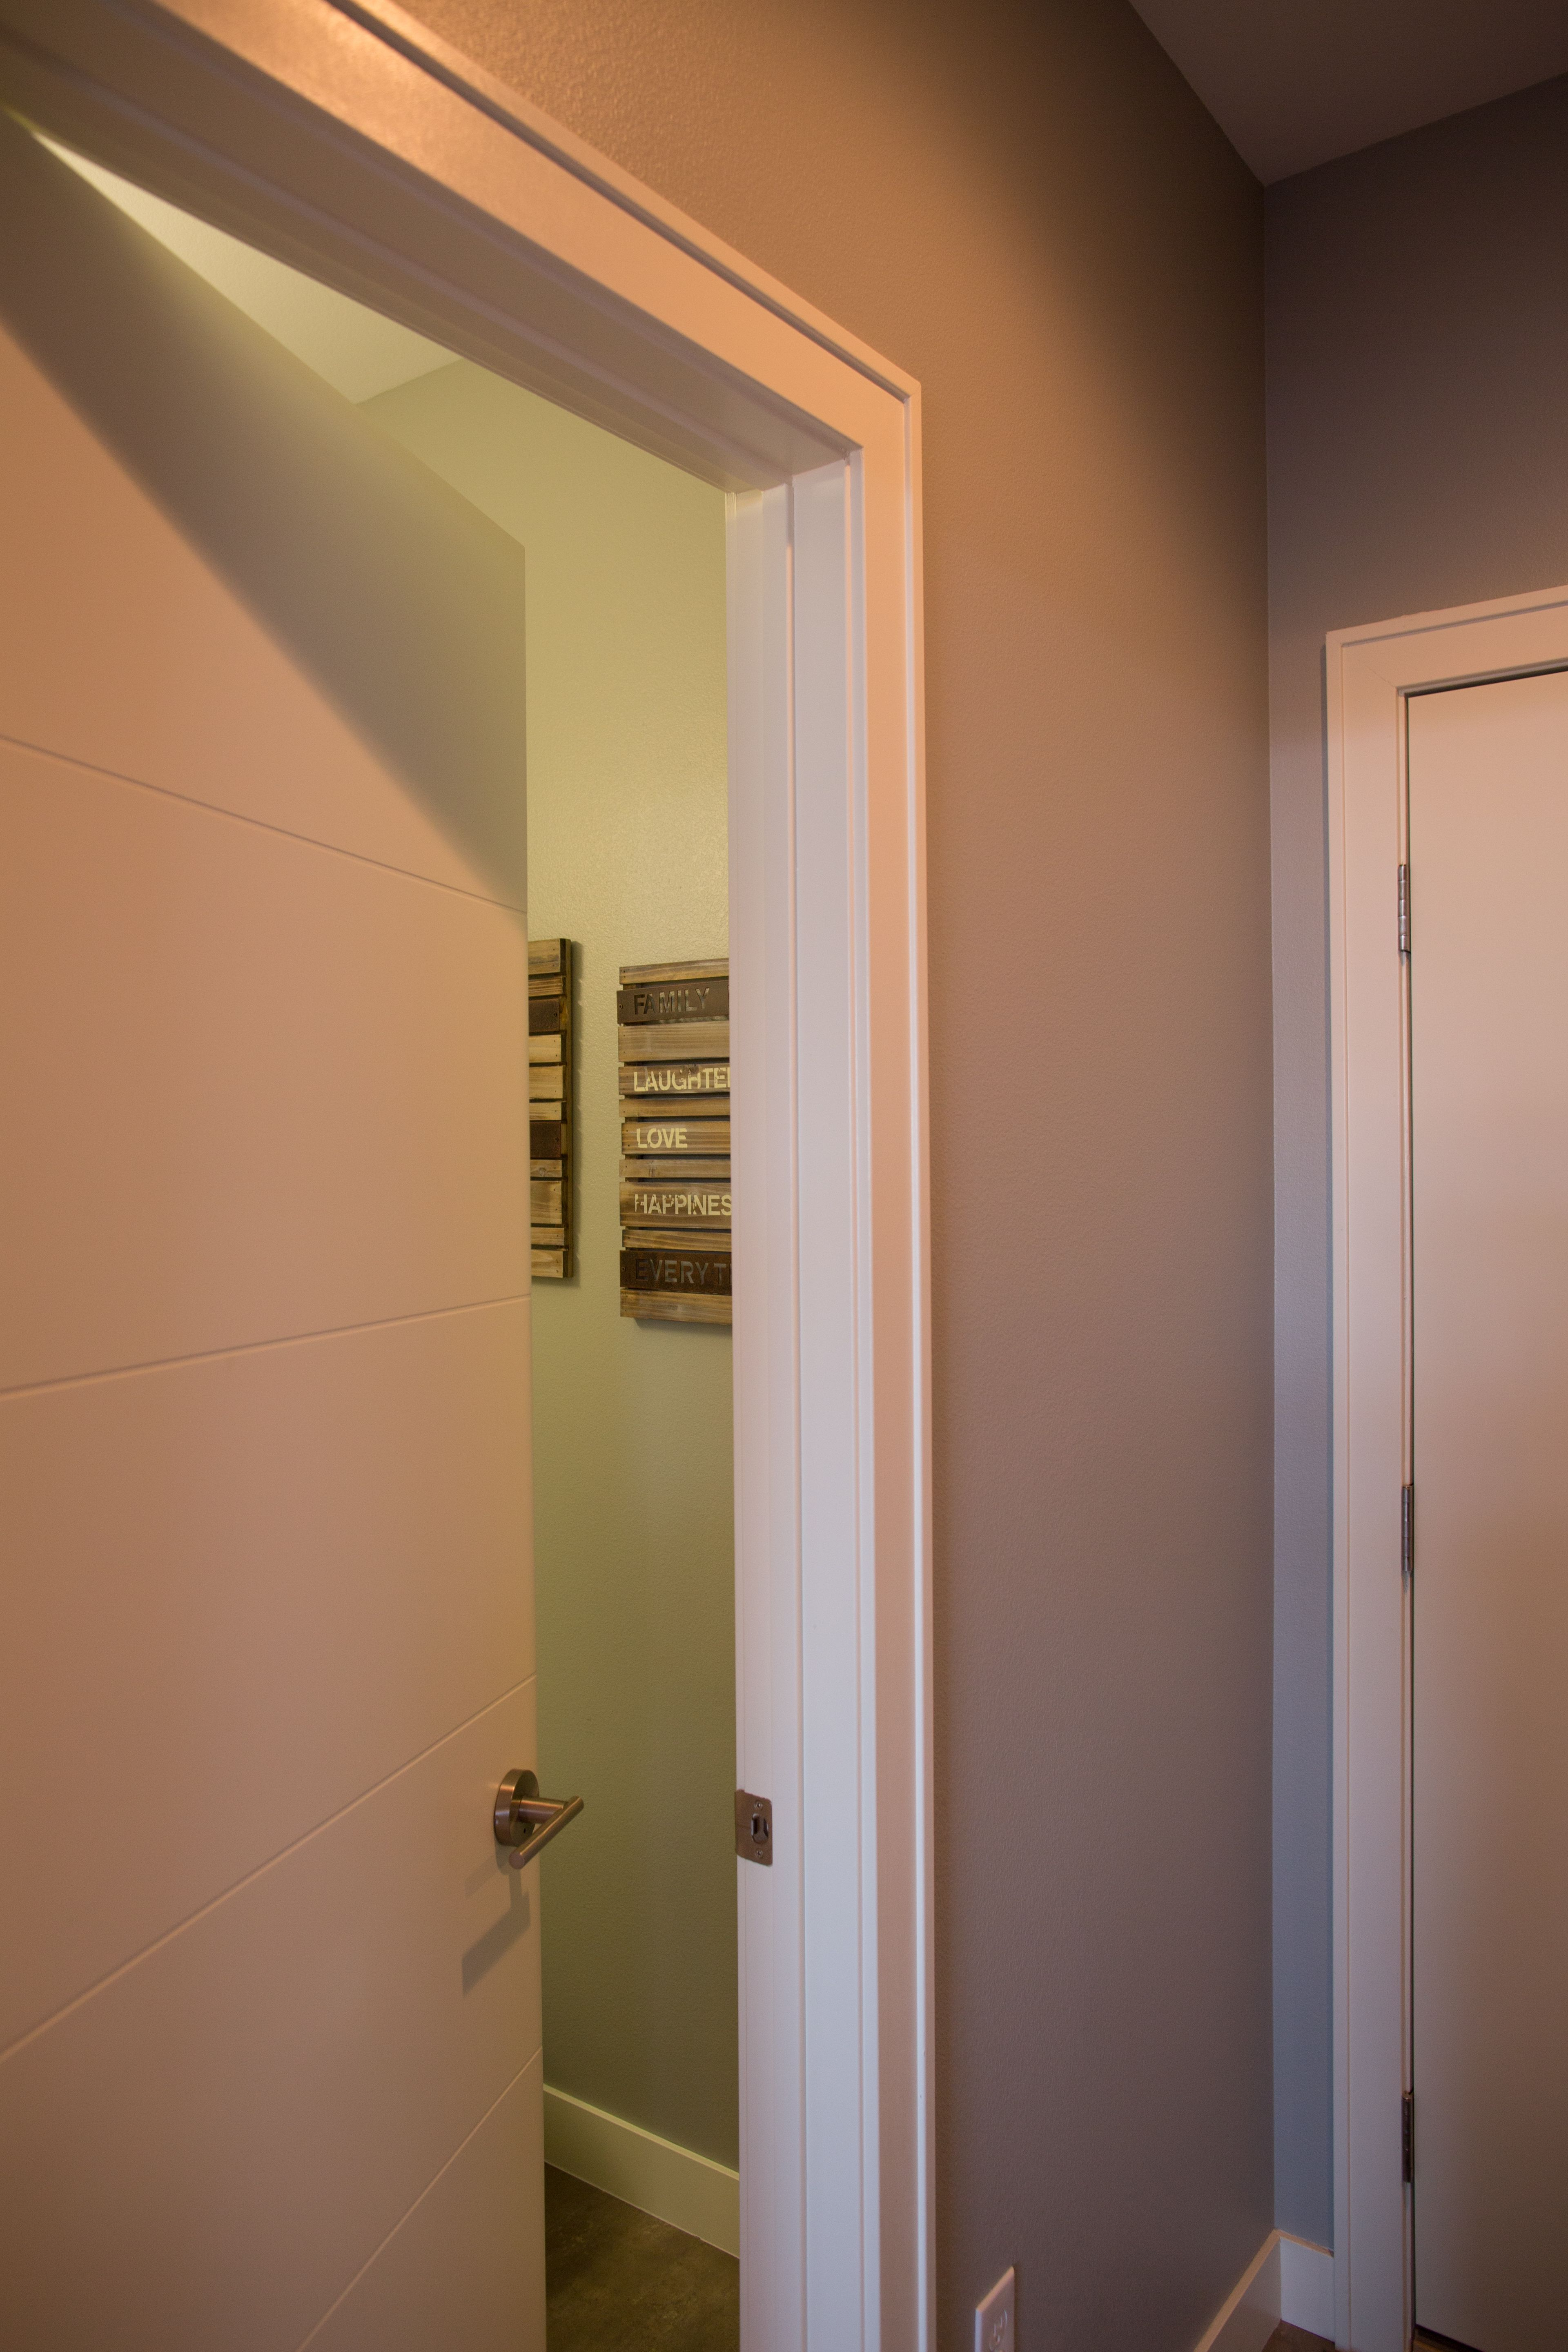 Interior Doors We Have Many Chic Interior Doors For Your Project Including This Molded Door With A Horizontal Groov Doors Interior Interior Baseboard Trim